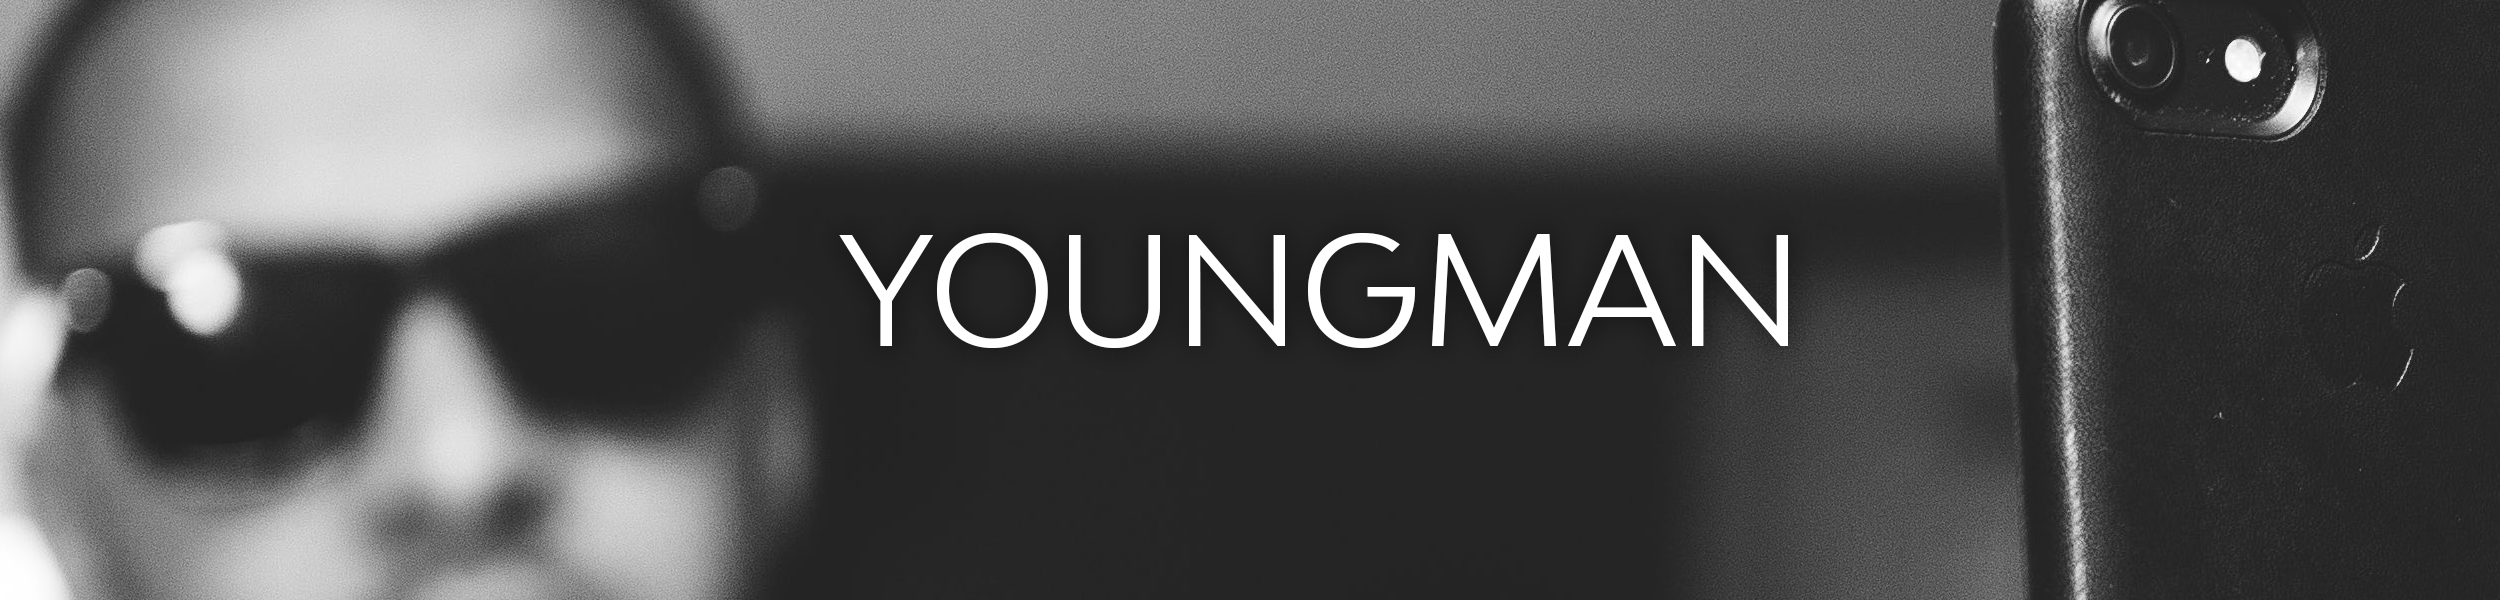 Youngman Header